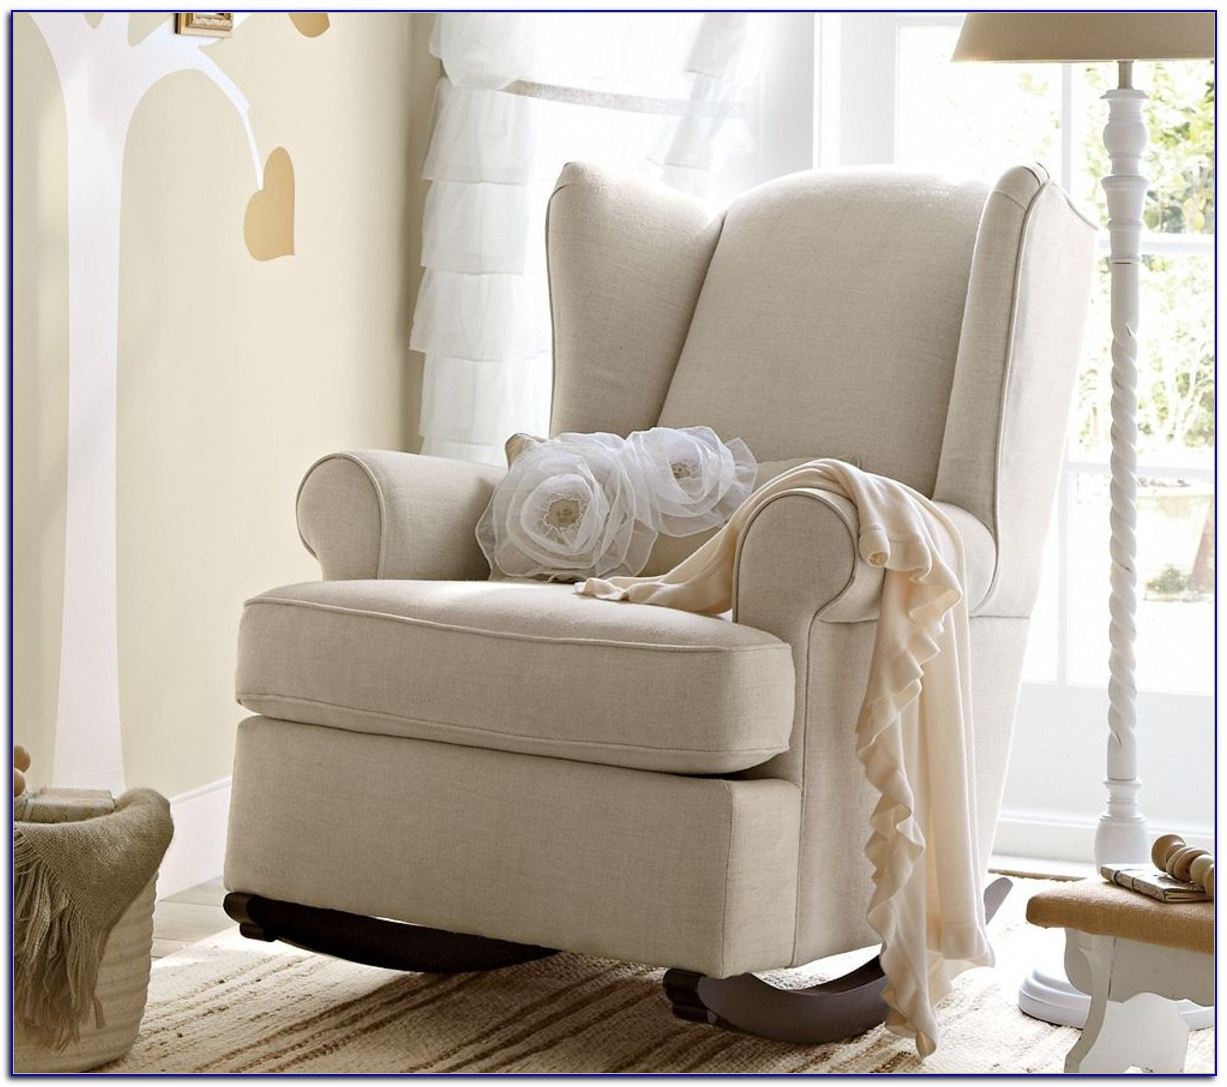 Rocking Chairs At Target Pertaining To Widely Used Rocking Chairs For Nursery At Target F99X On Perfect Home Designing (View 14 of 15)